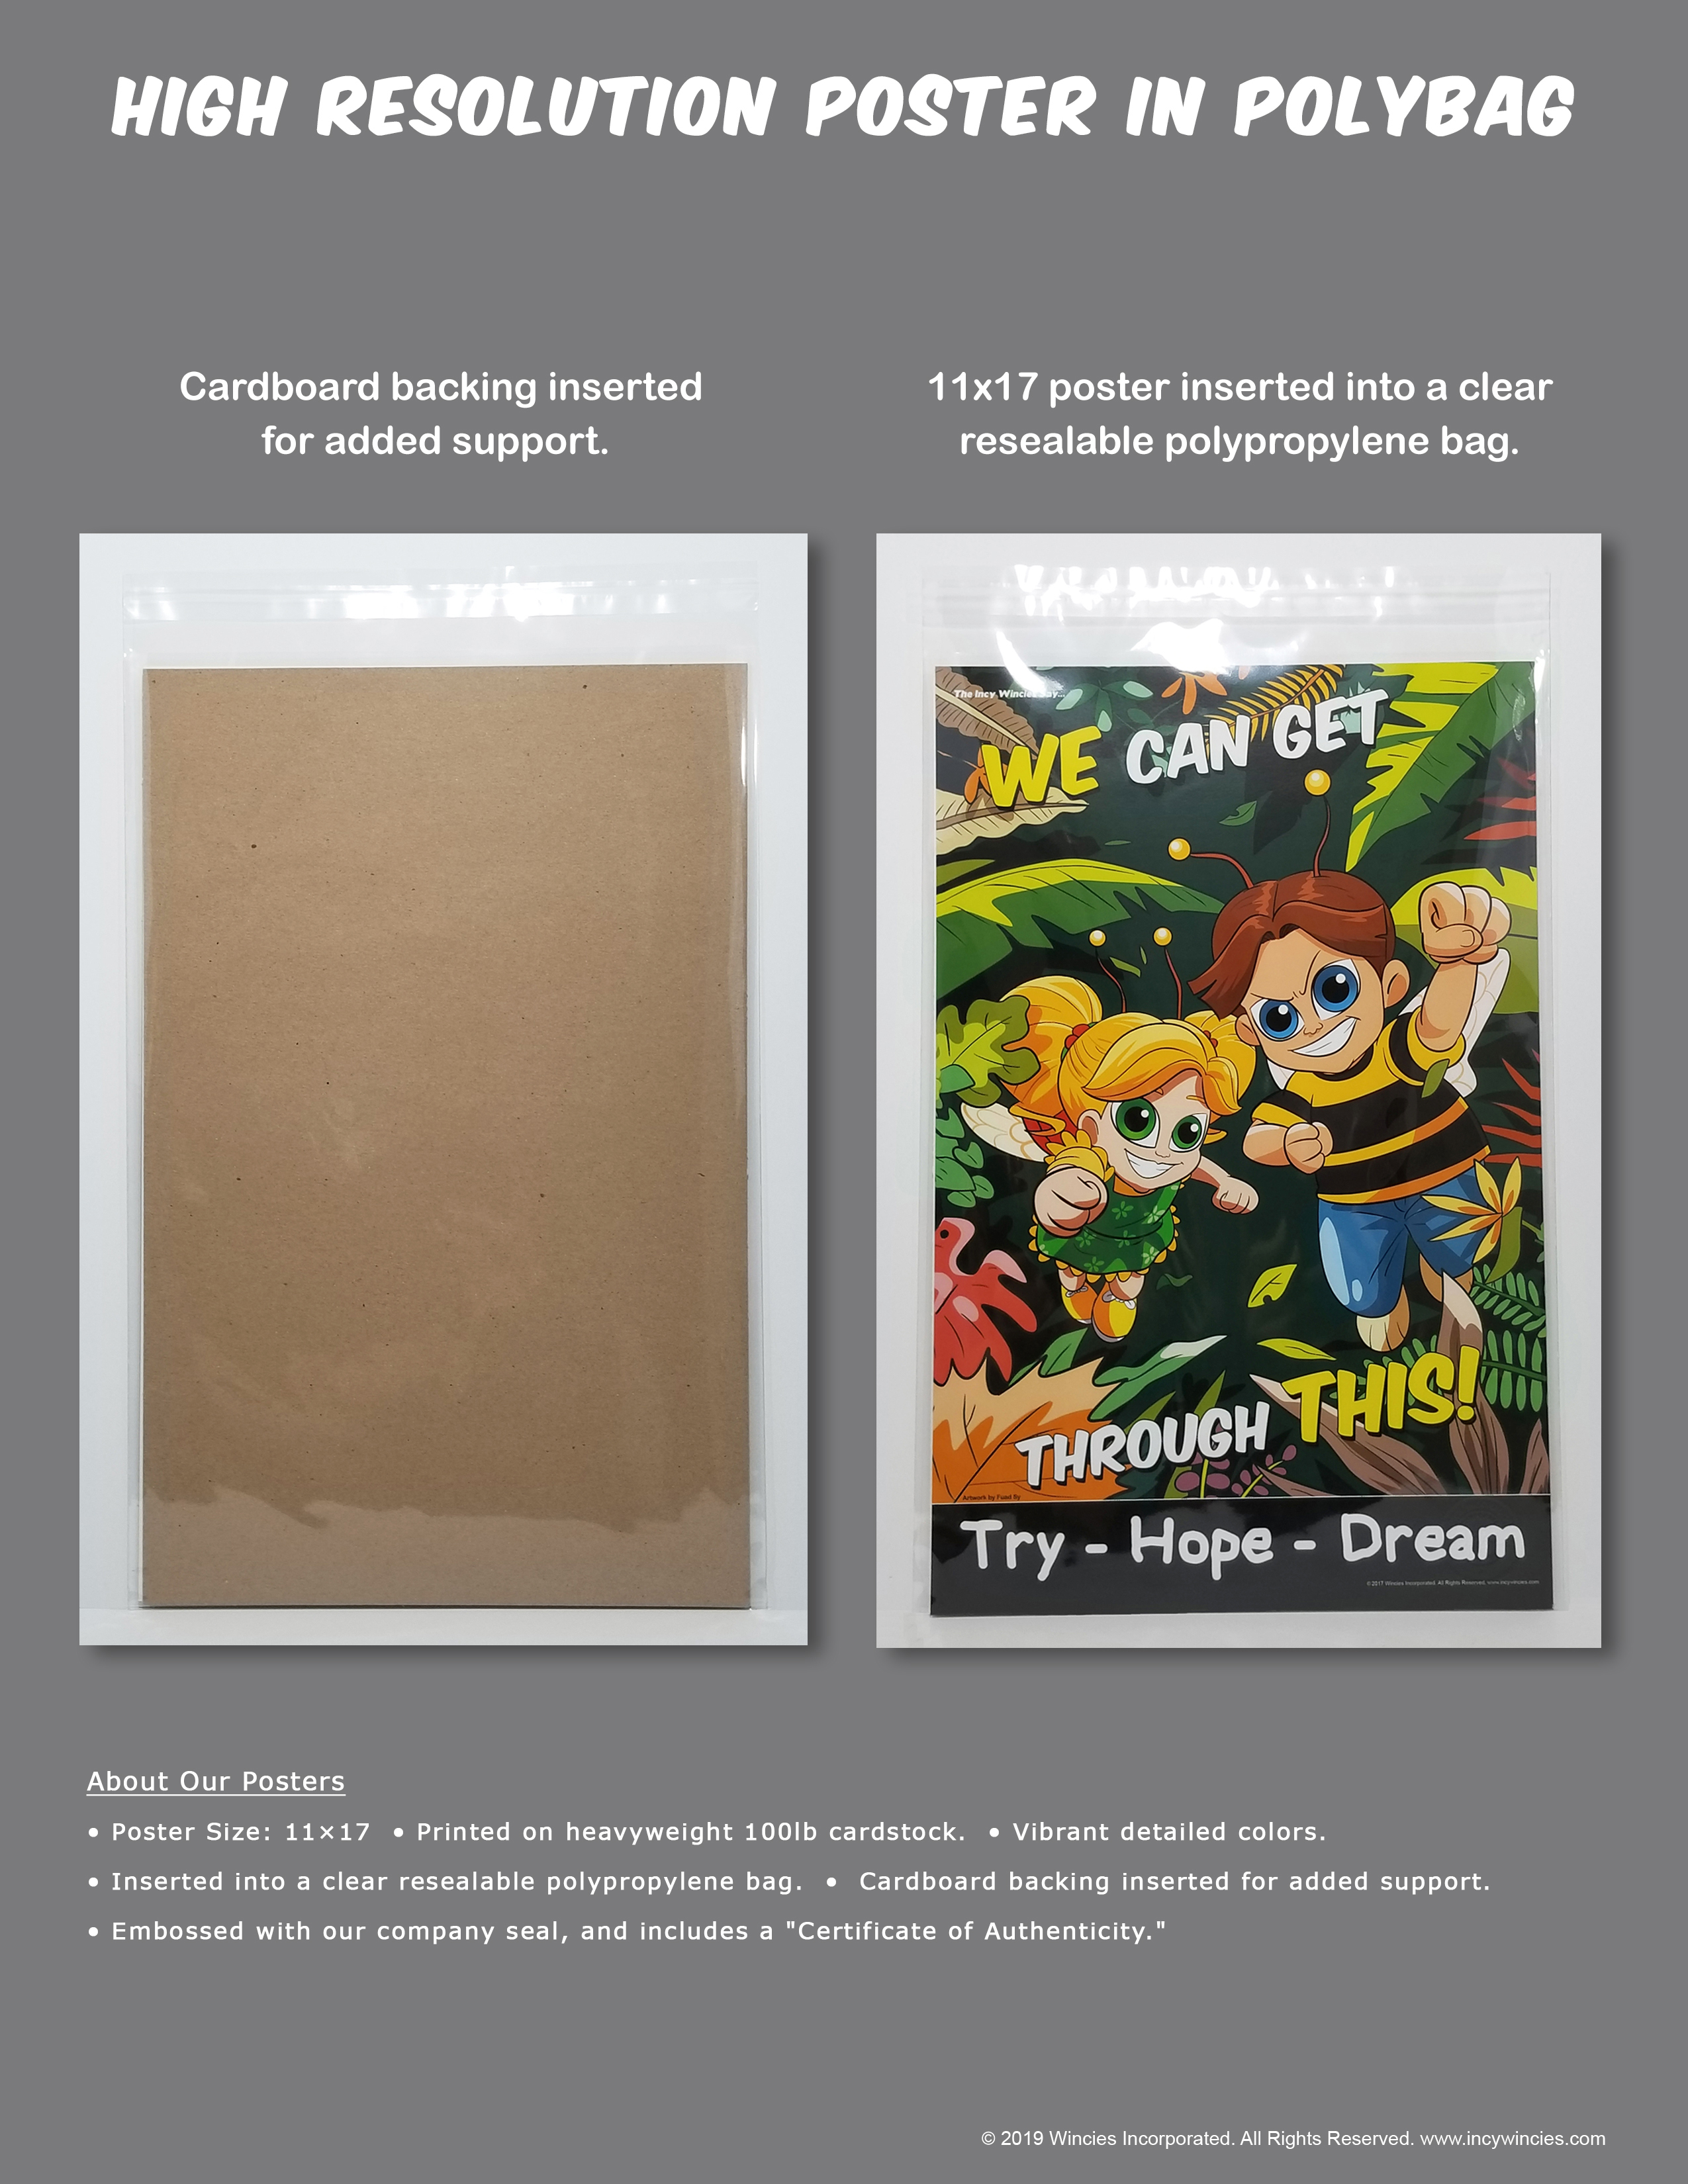 Poly-bagged Posters